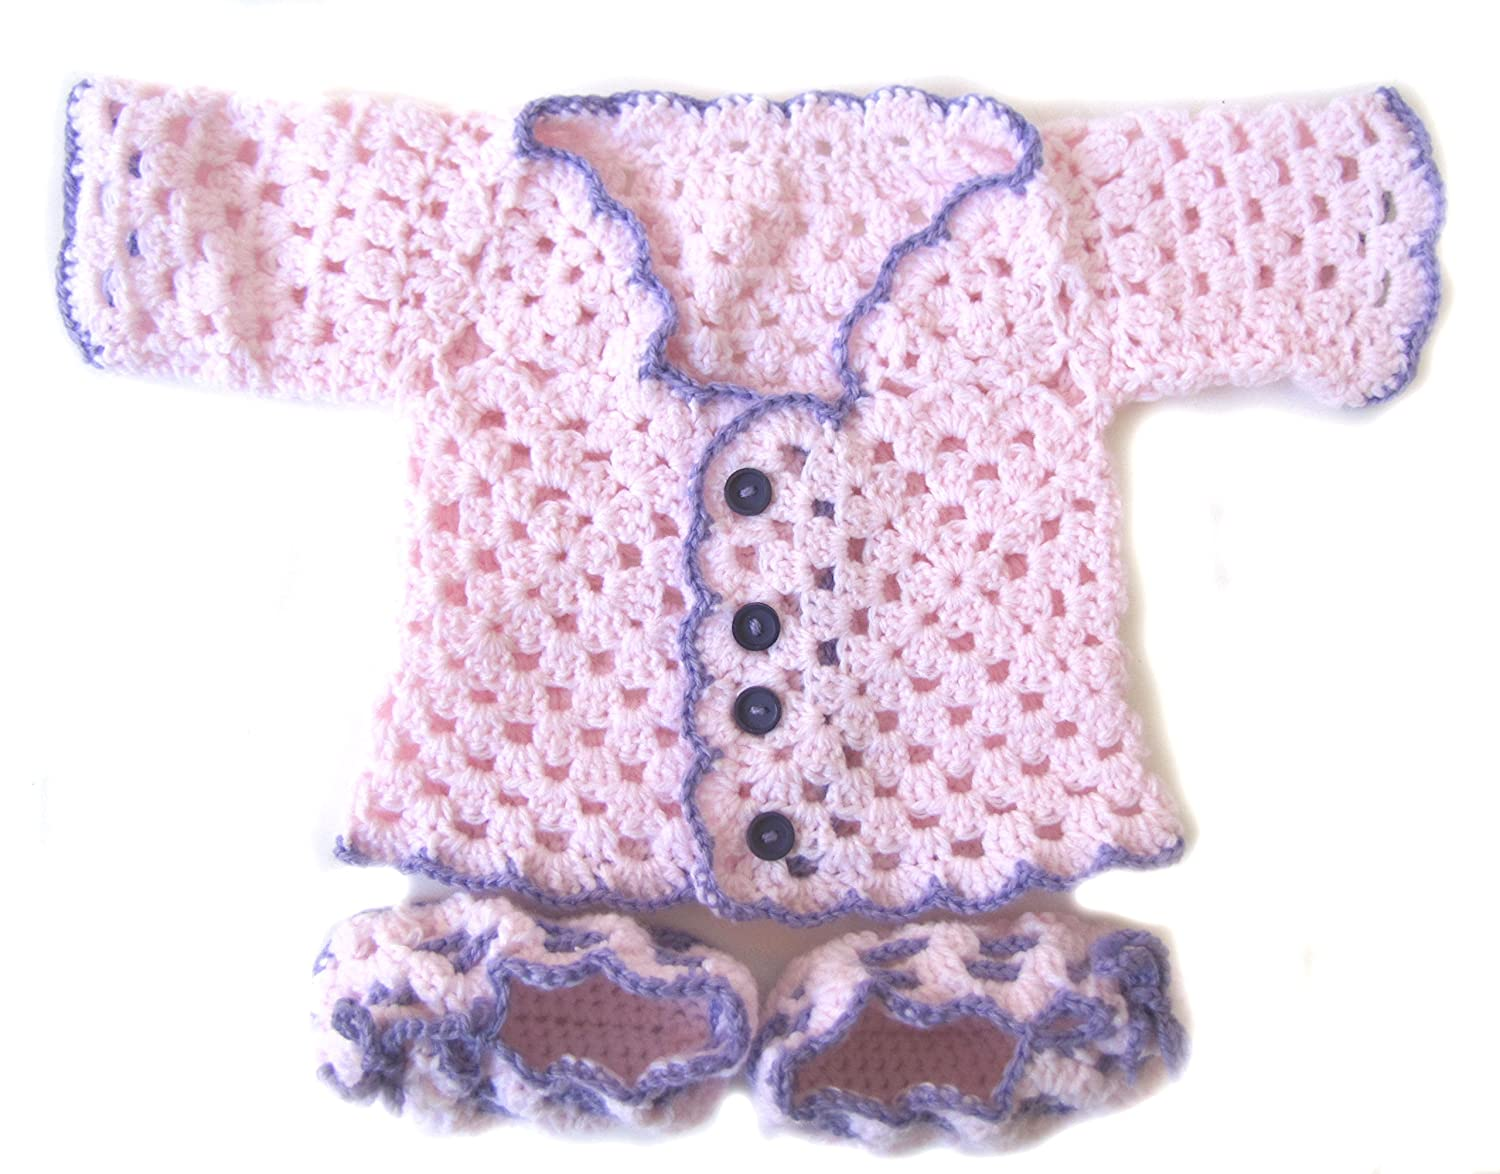 KSS Handmade Pink Cardigan and Booties 6 Months